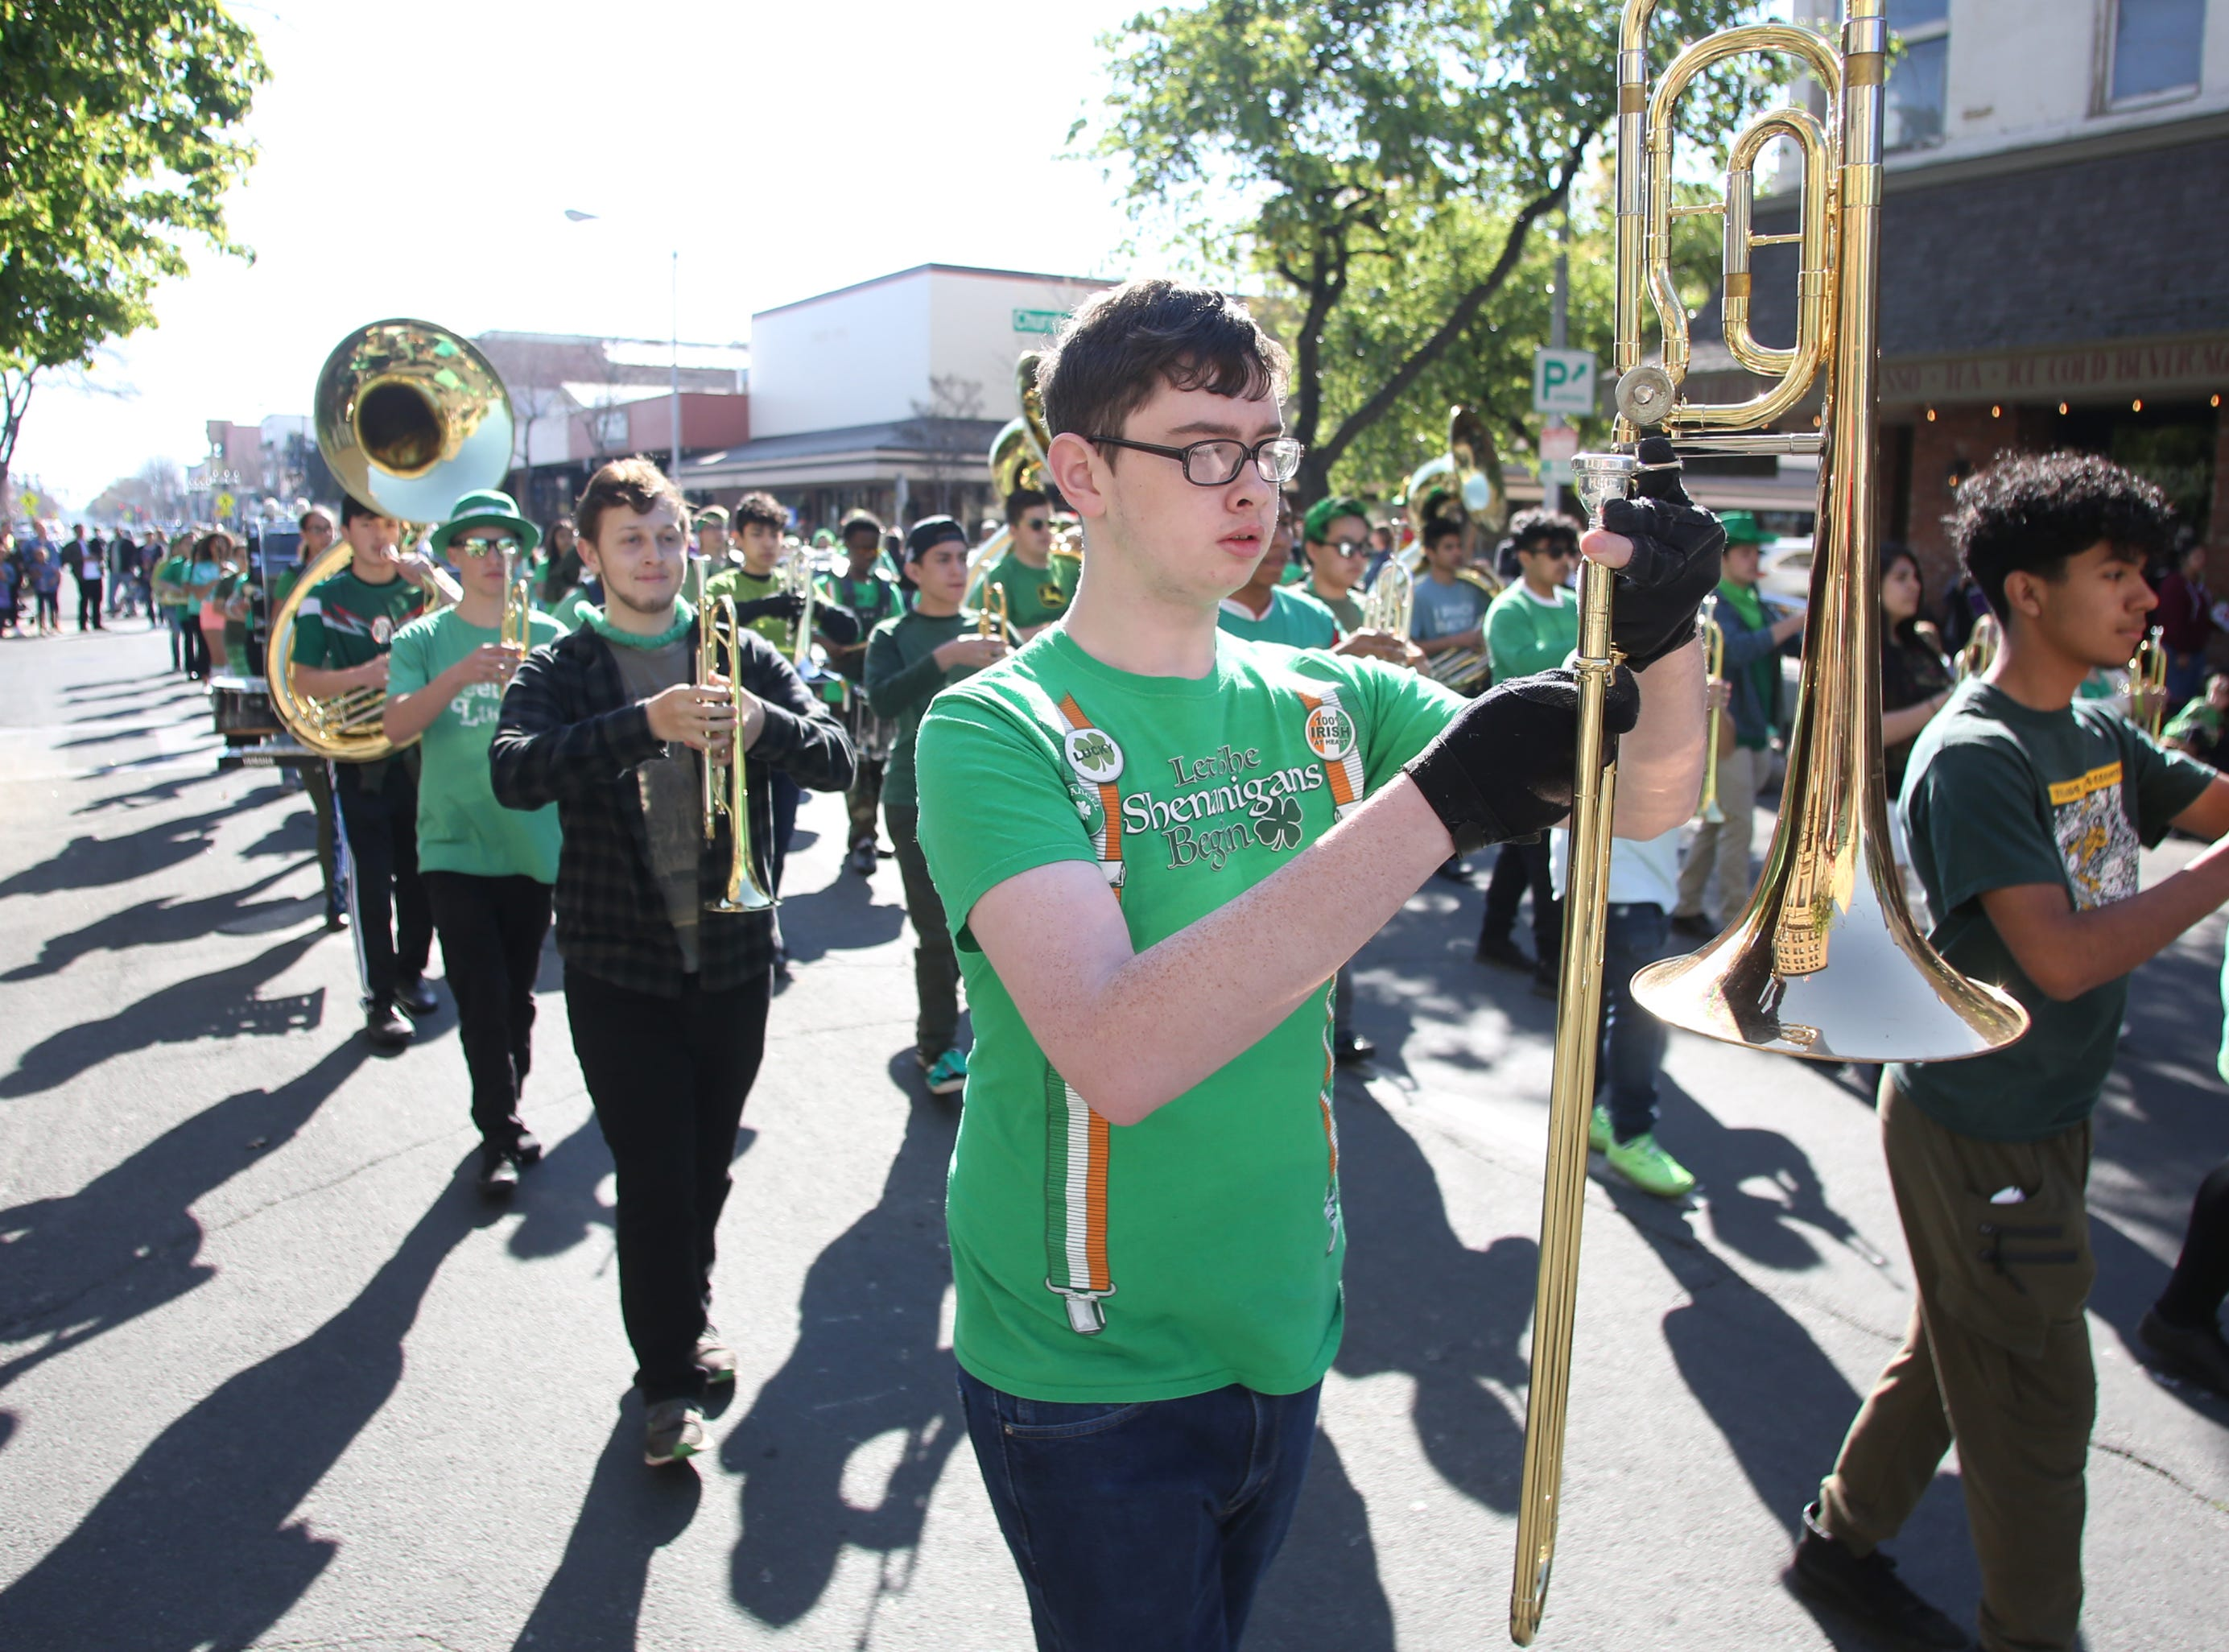 Braeden Alberstein from Golden West plays for the crowds lining the streets at this year's St. Patrick's Day parade rolling through Main Street Saturday, March 16, 2019 in Visalia, Calif.